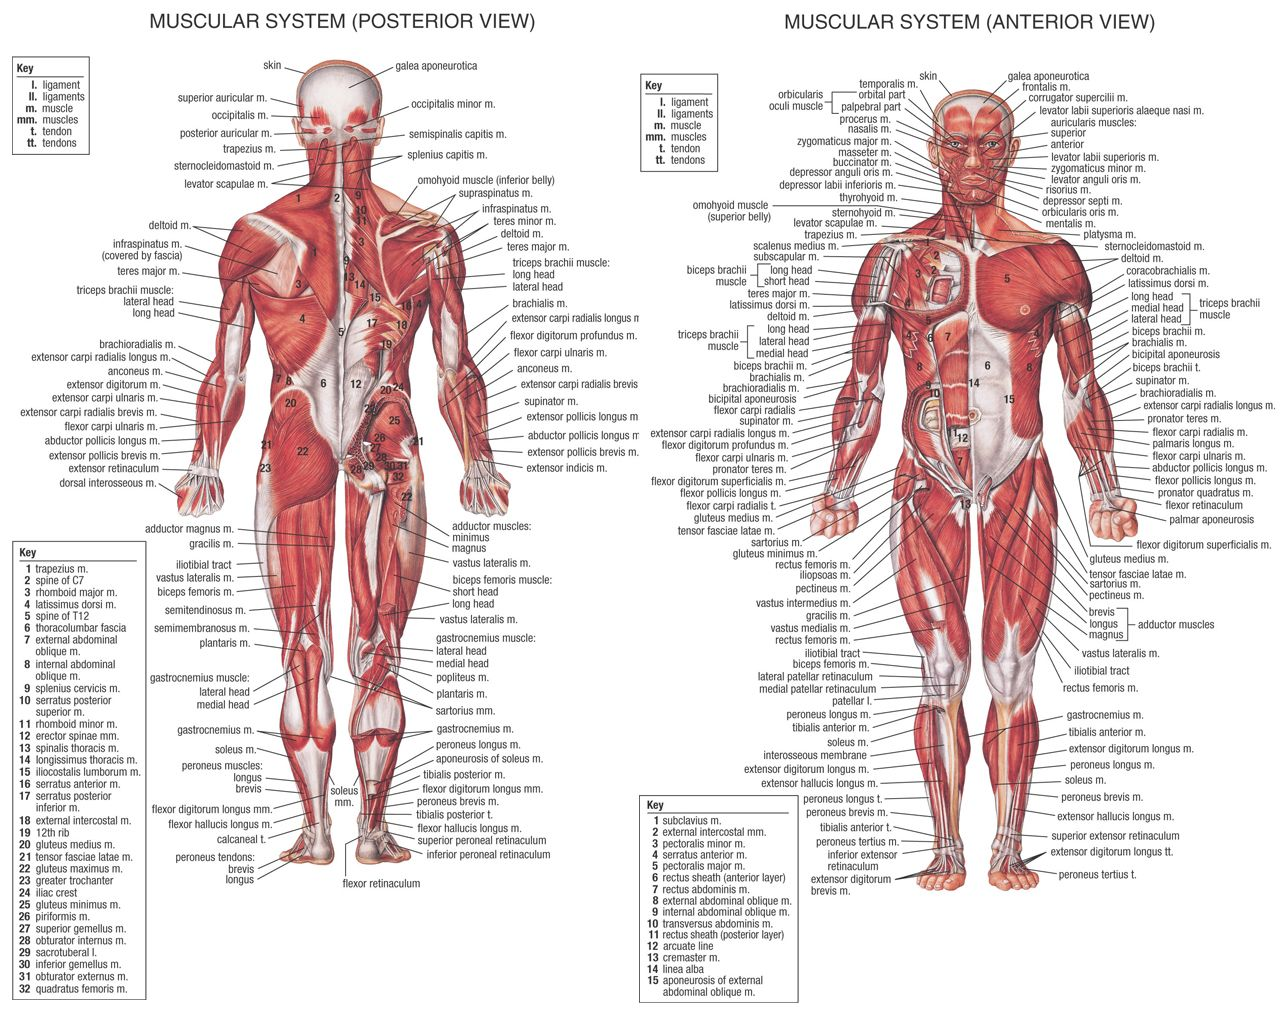 Pin by Bud W.Y. on Sports medicine | Pinterest | Muscles, Muscle ...